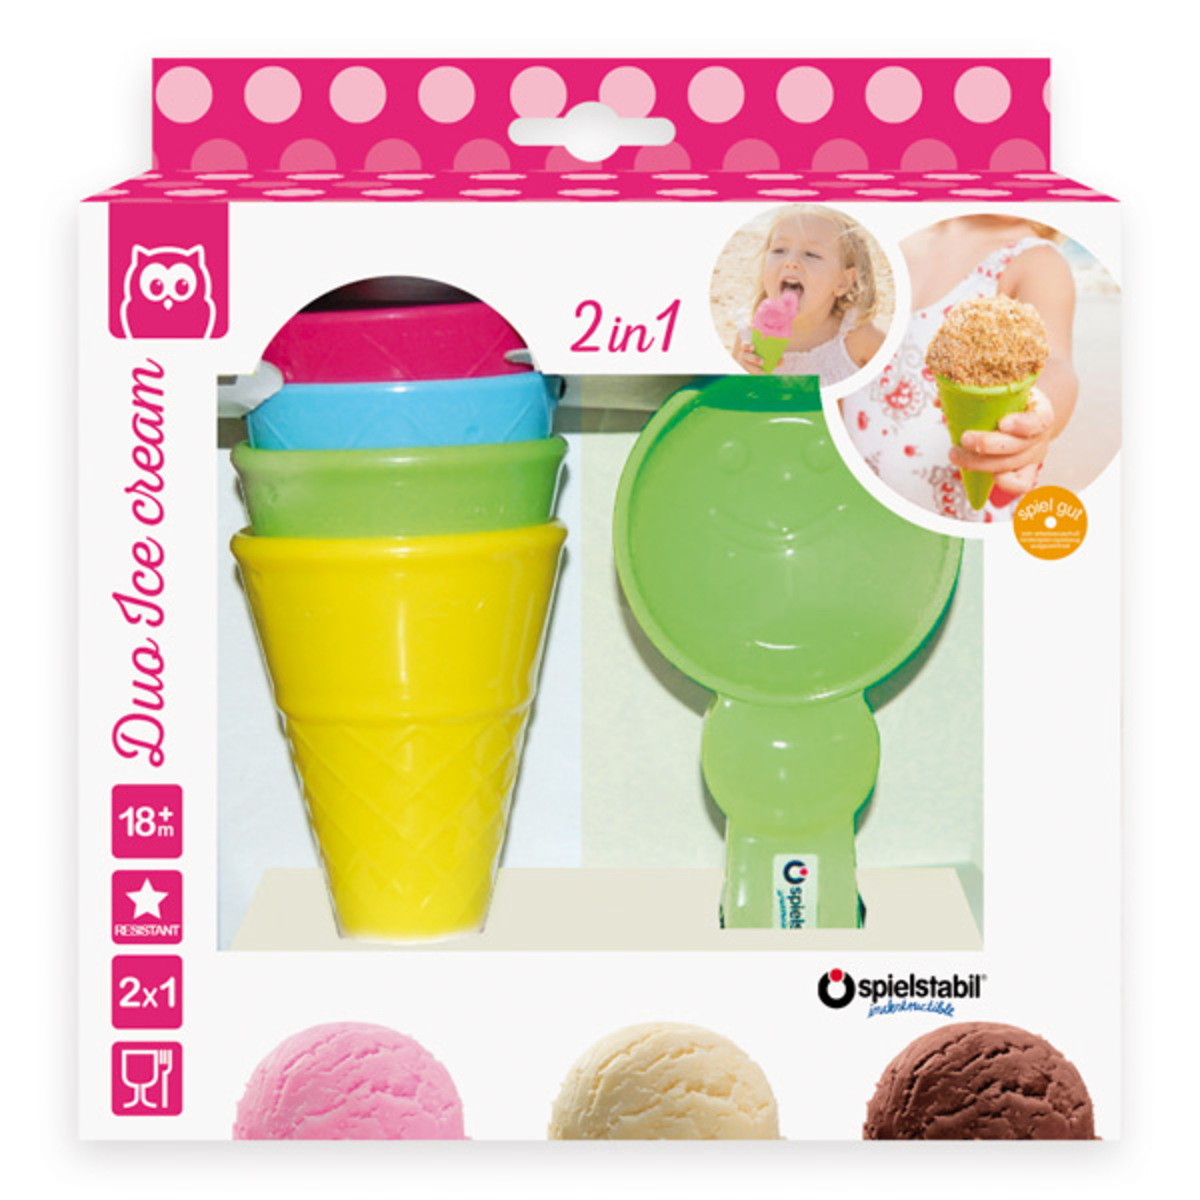 Kit for ice-cream 2 in 1